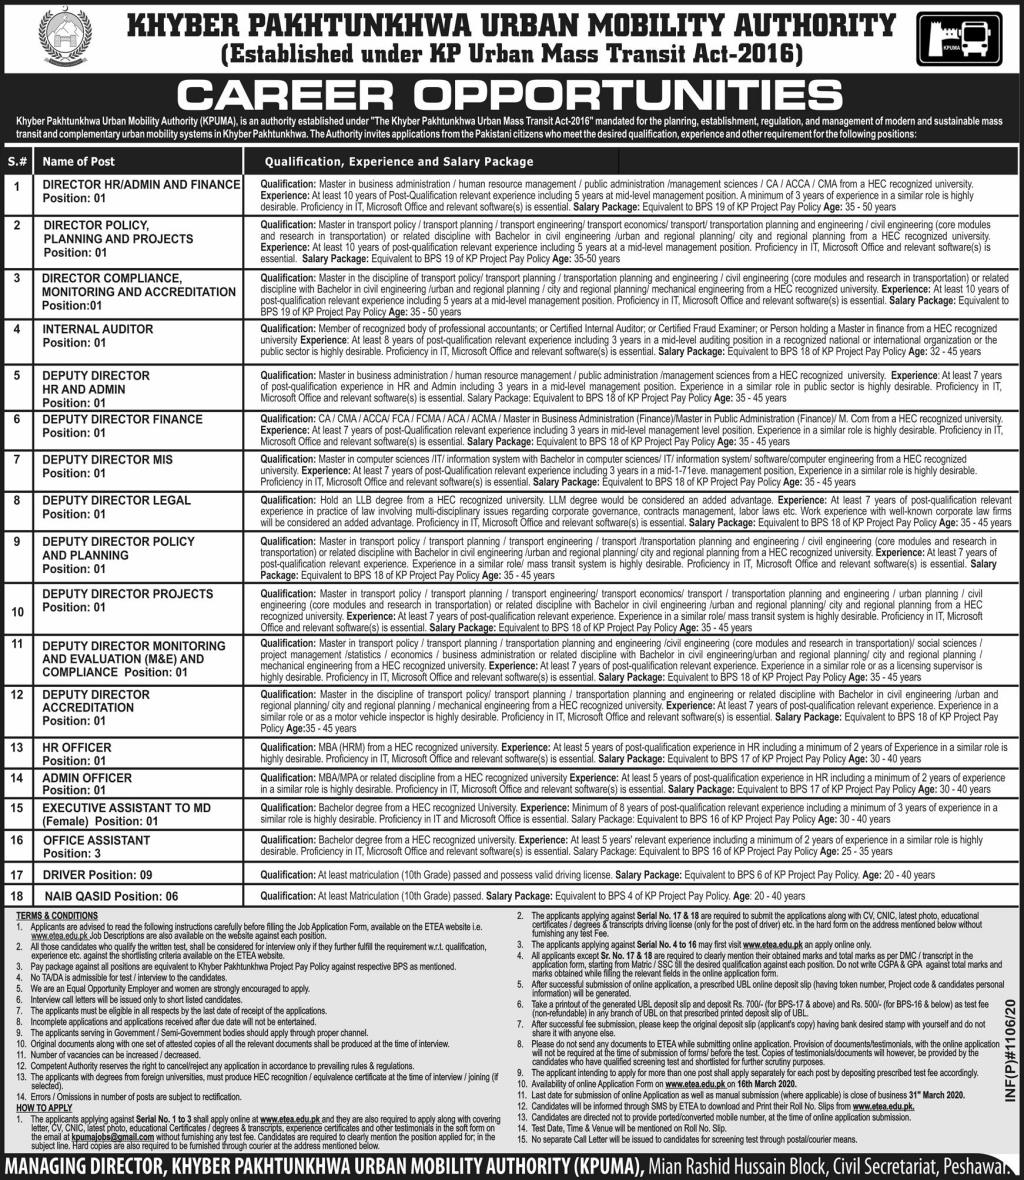 KPK Urban Mobility Authority KPUMA Jobs ETEA Result